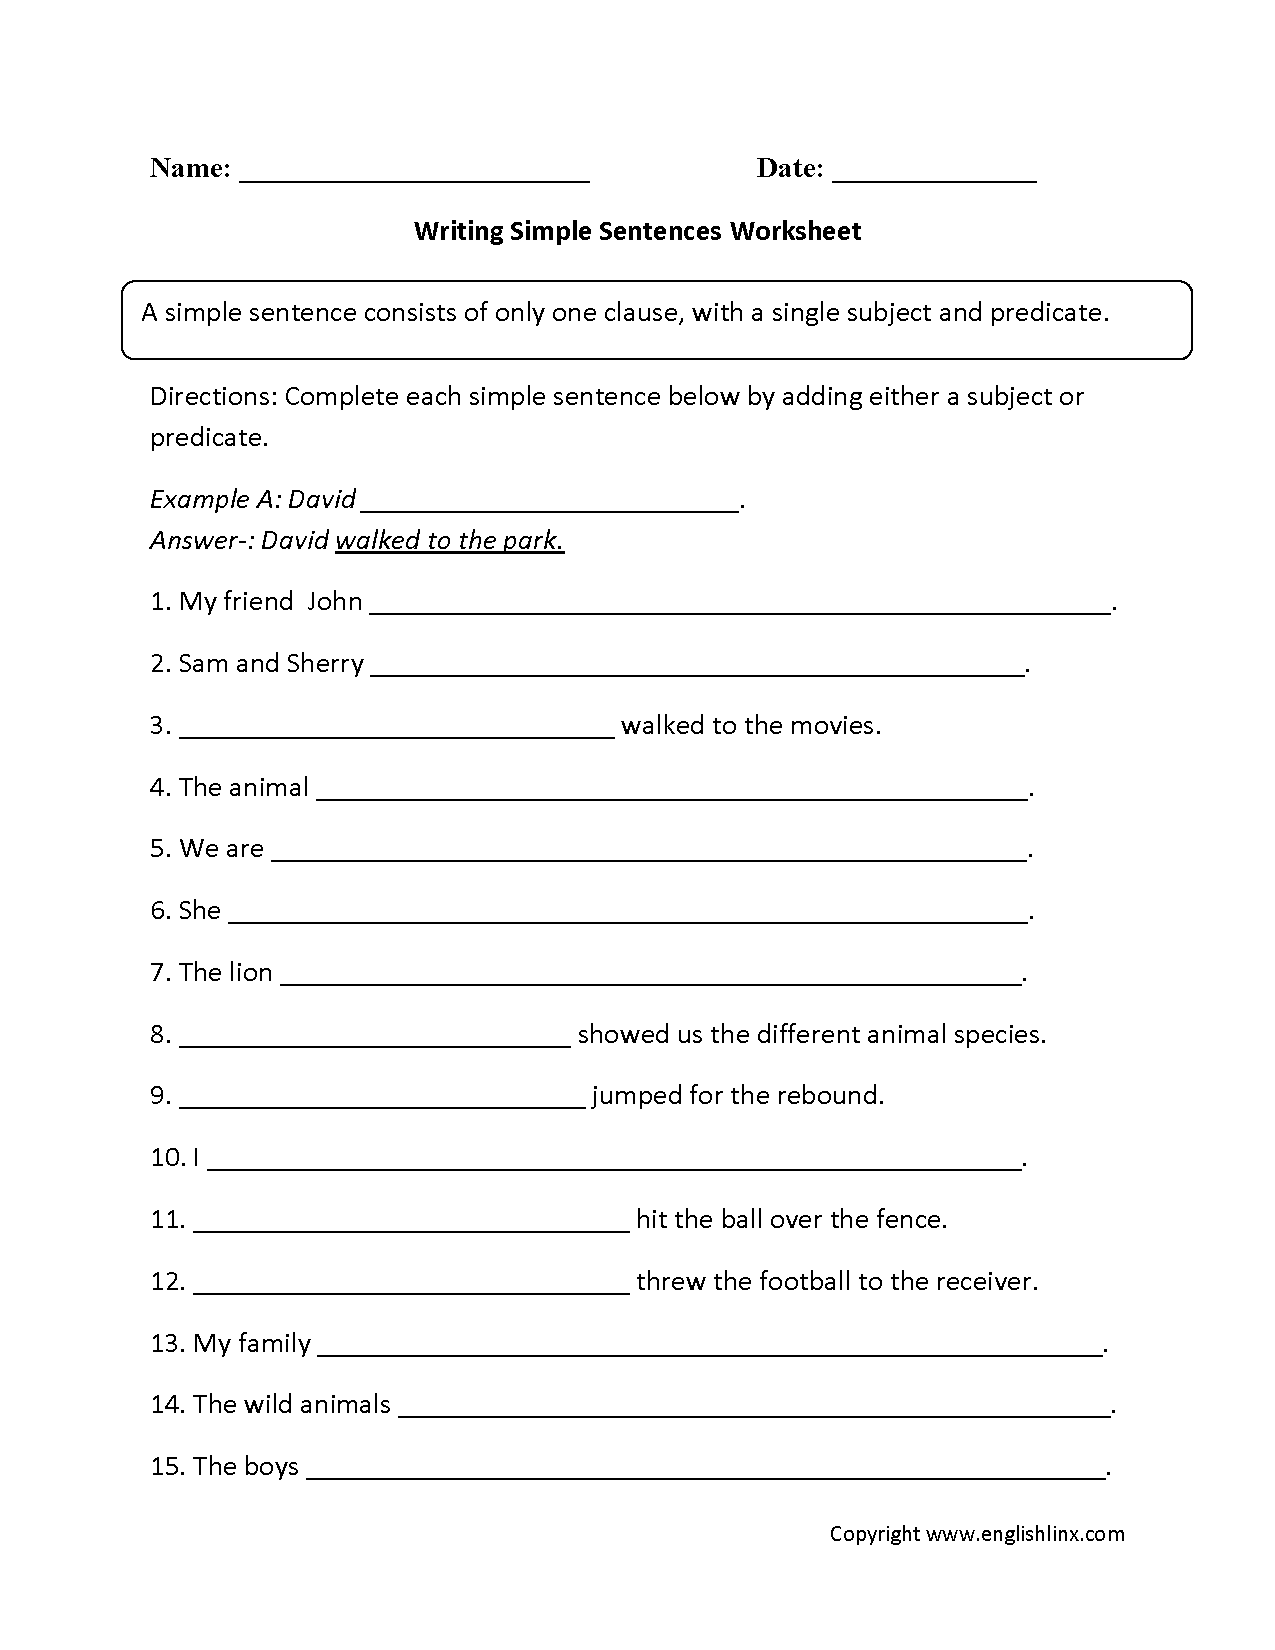 Writing Simple Sentences Worksheet